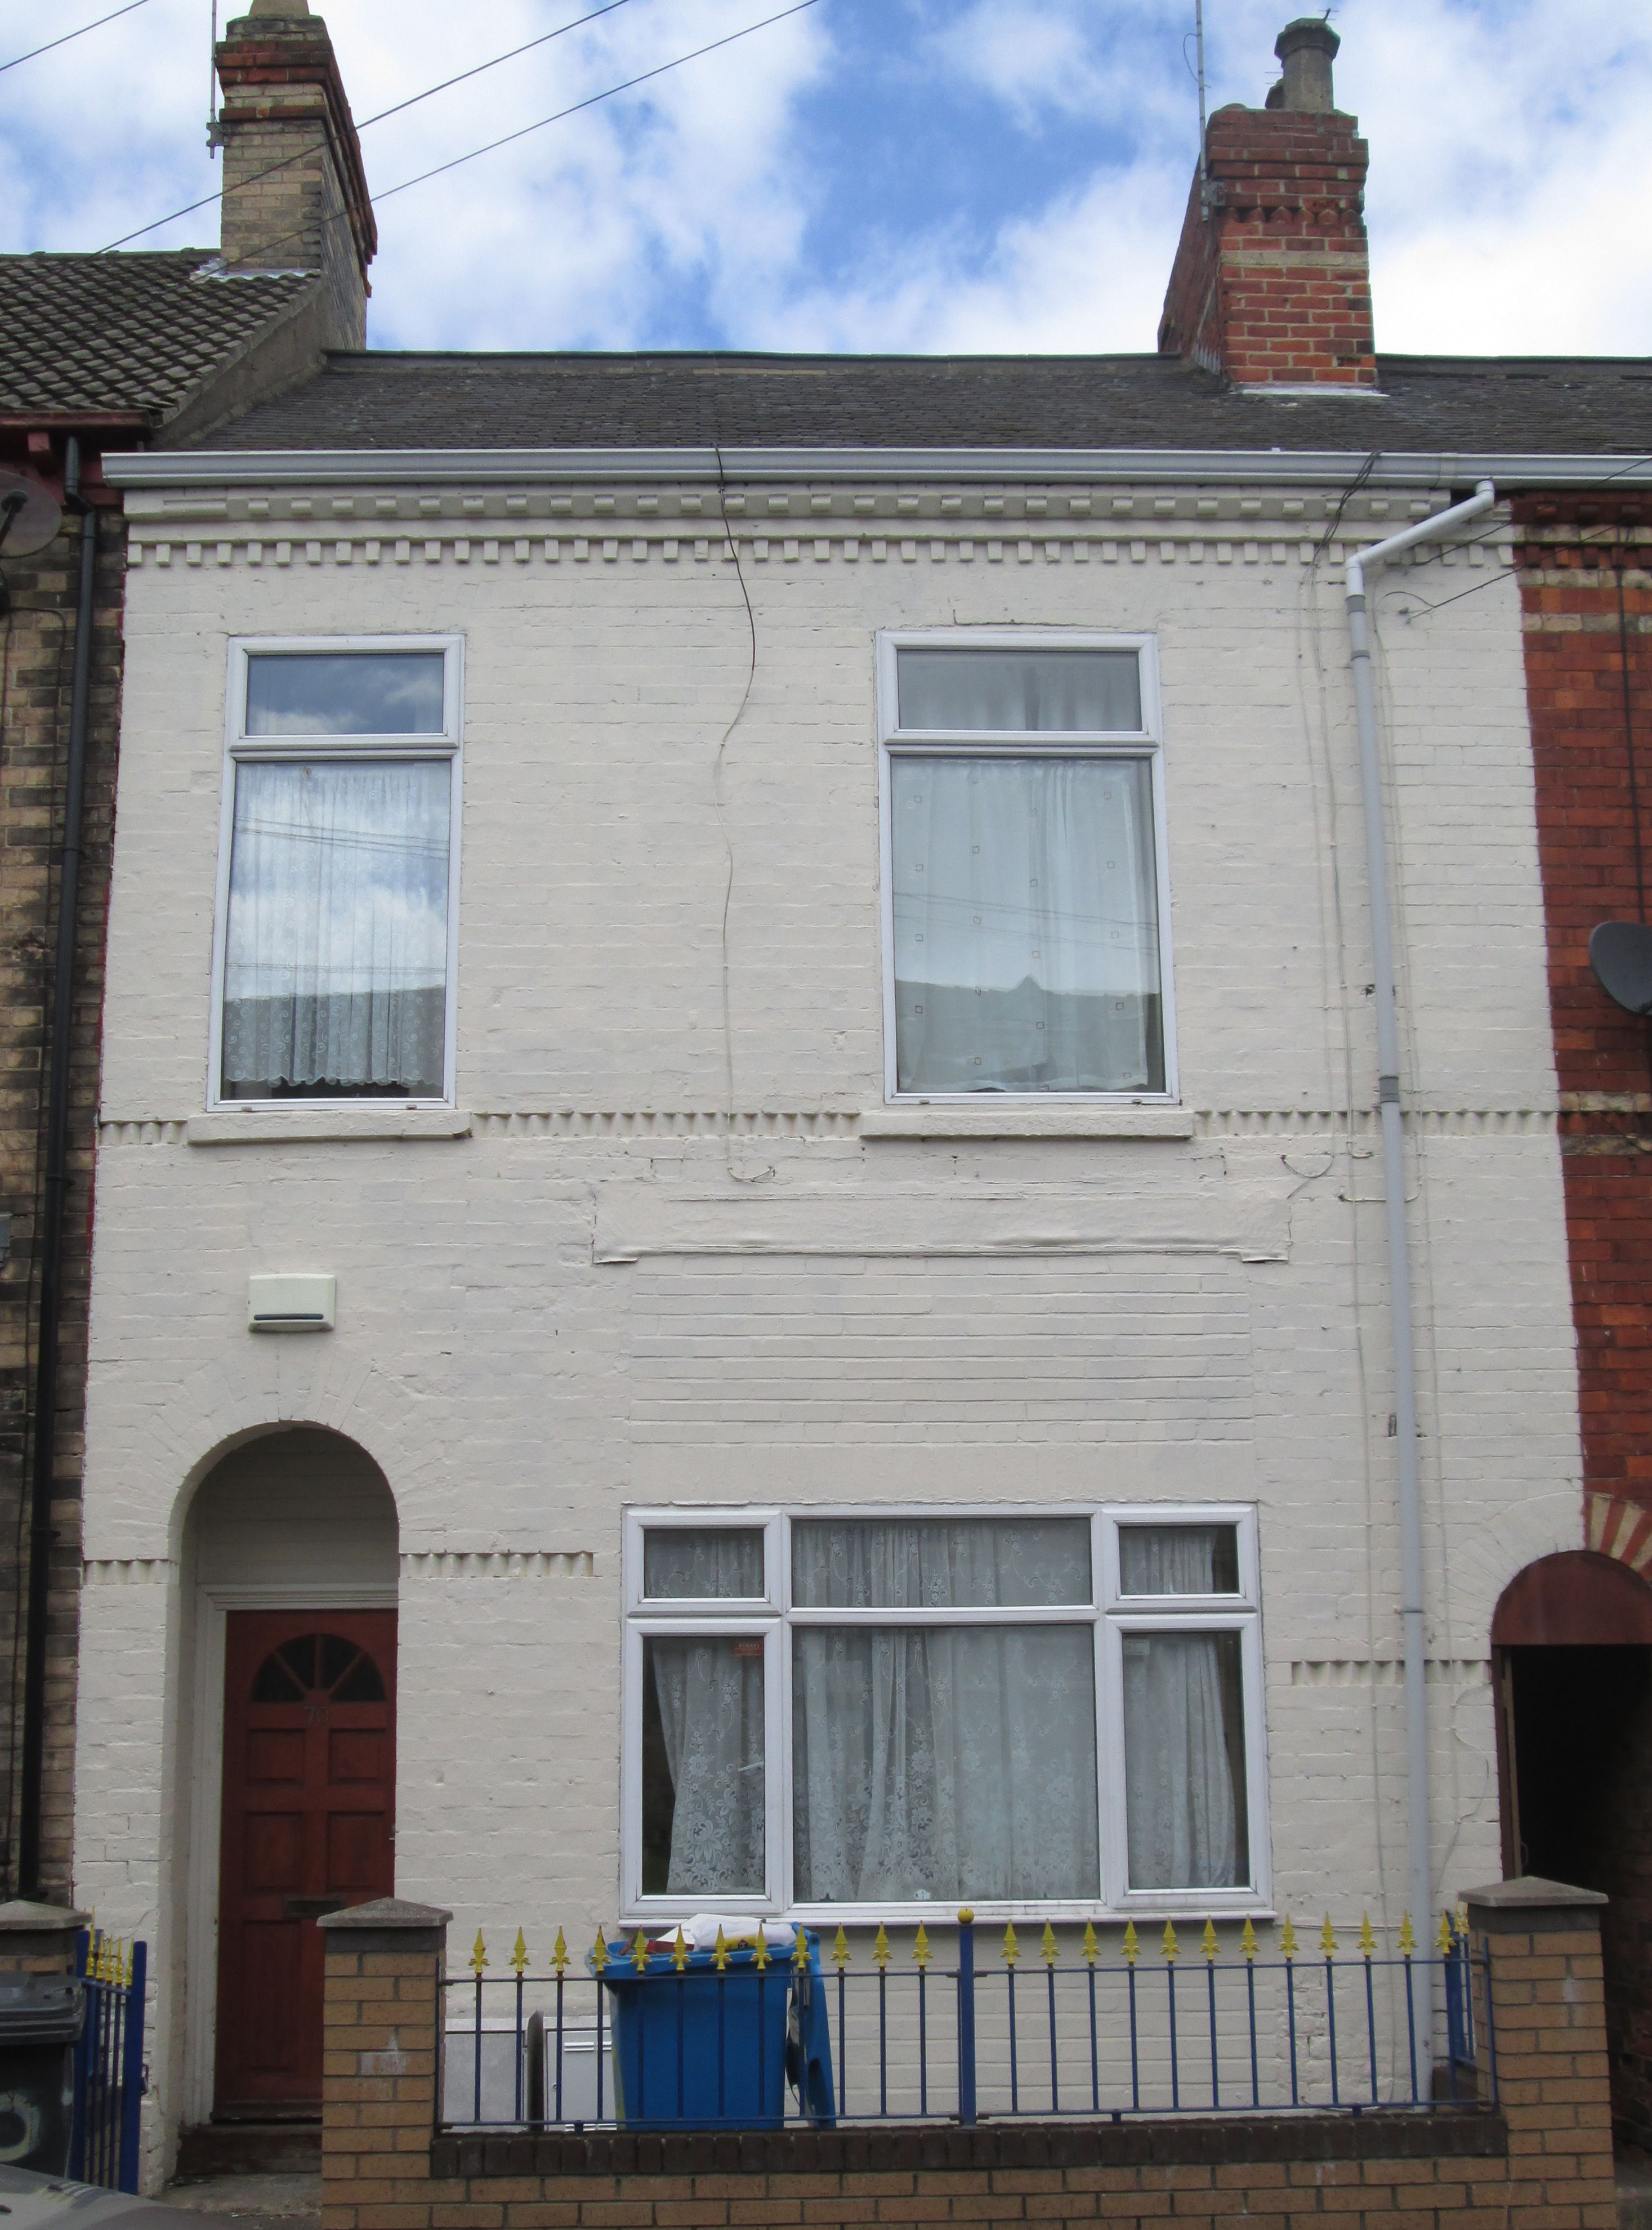 bd3162dae The home of The Housemartins singer Paul Heaton and guitarist Stan Cullimore